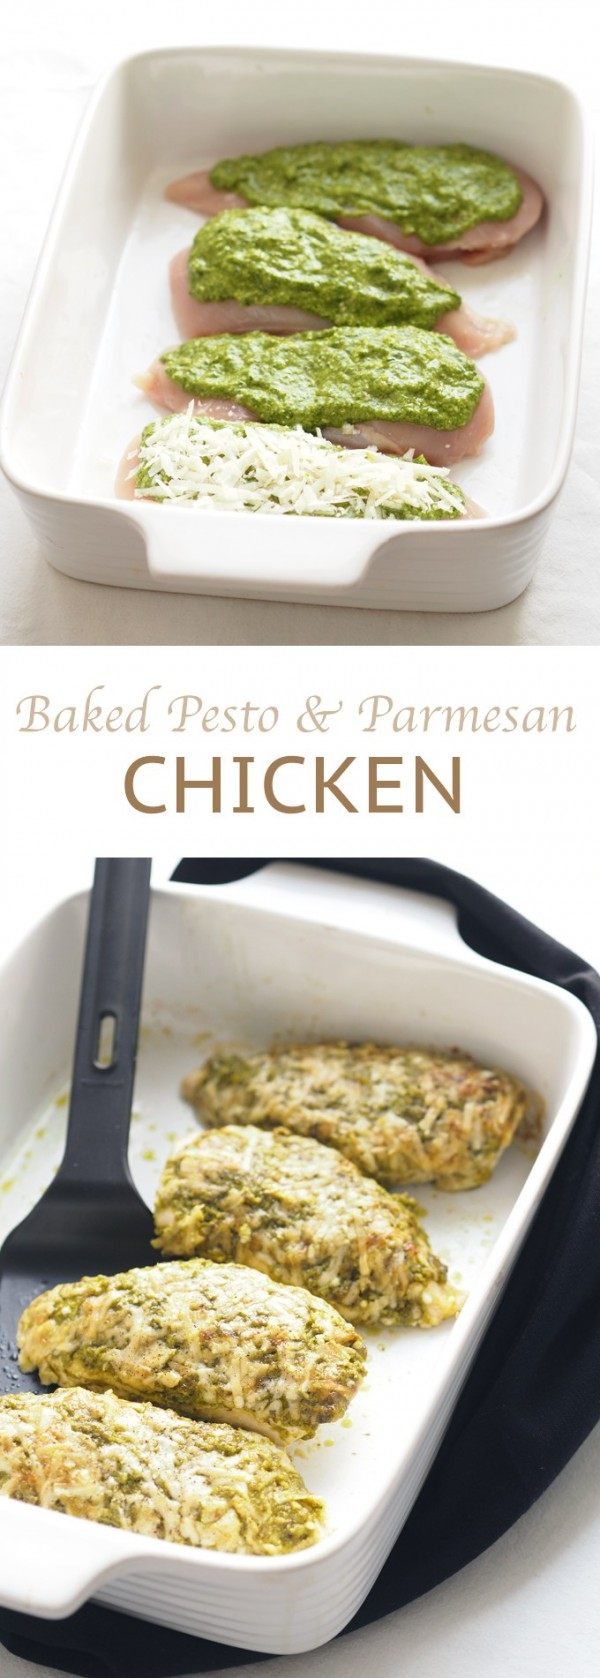 Get the recipe Baked Pesto and Parmesan Chicken @recipes_to_go